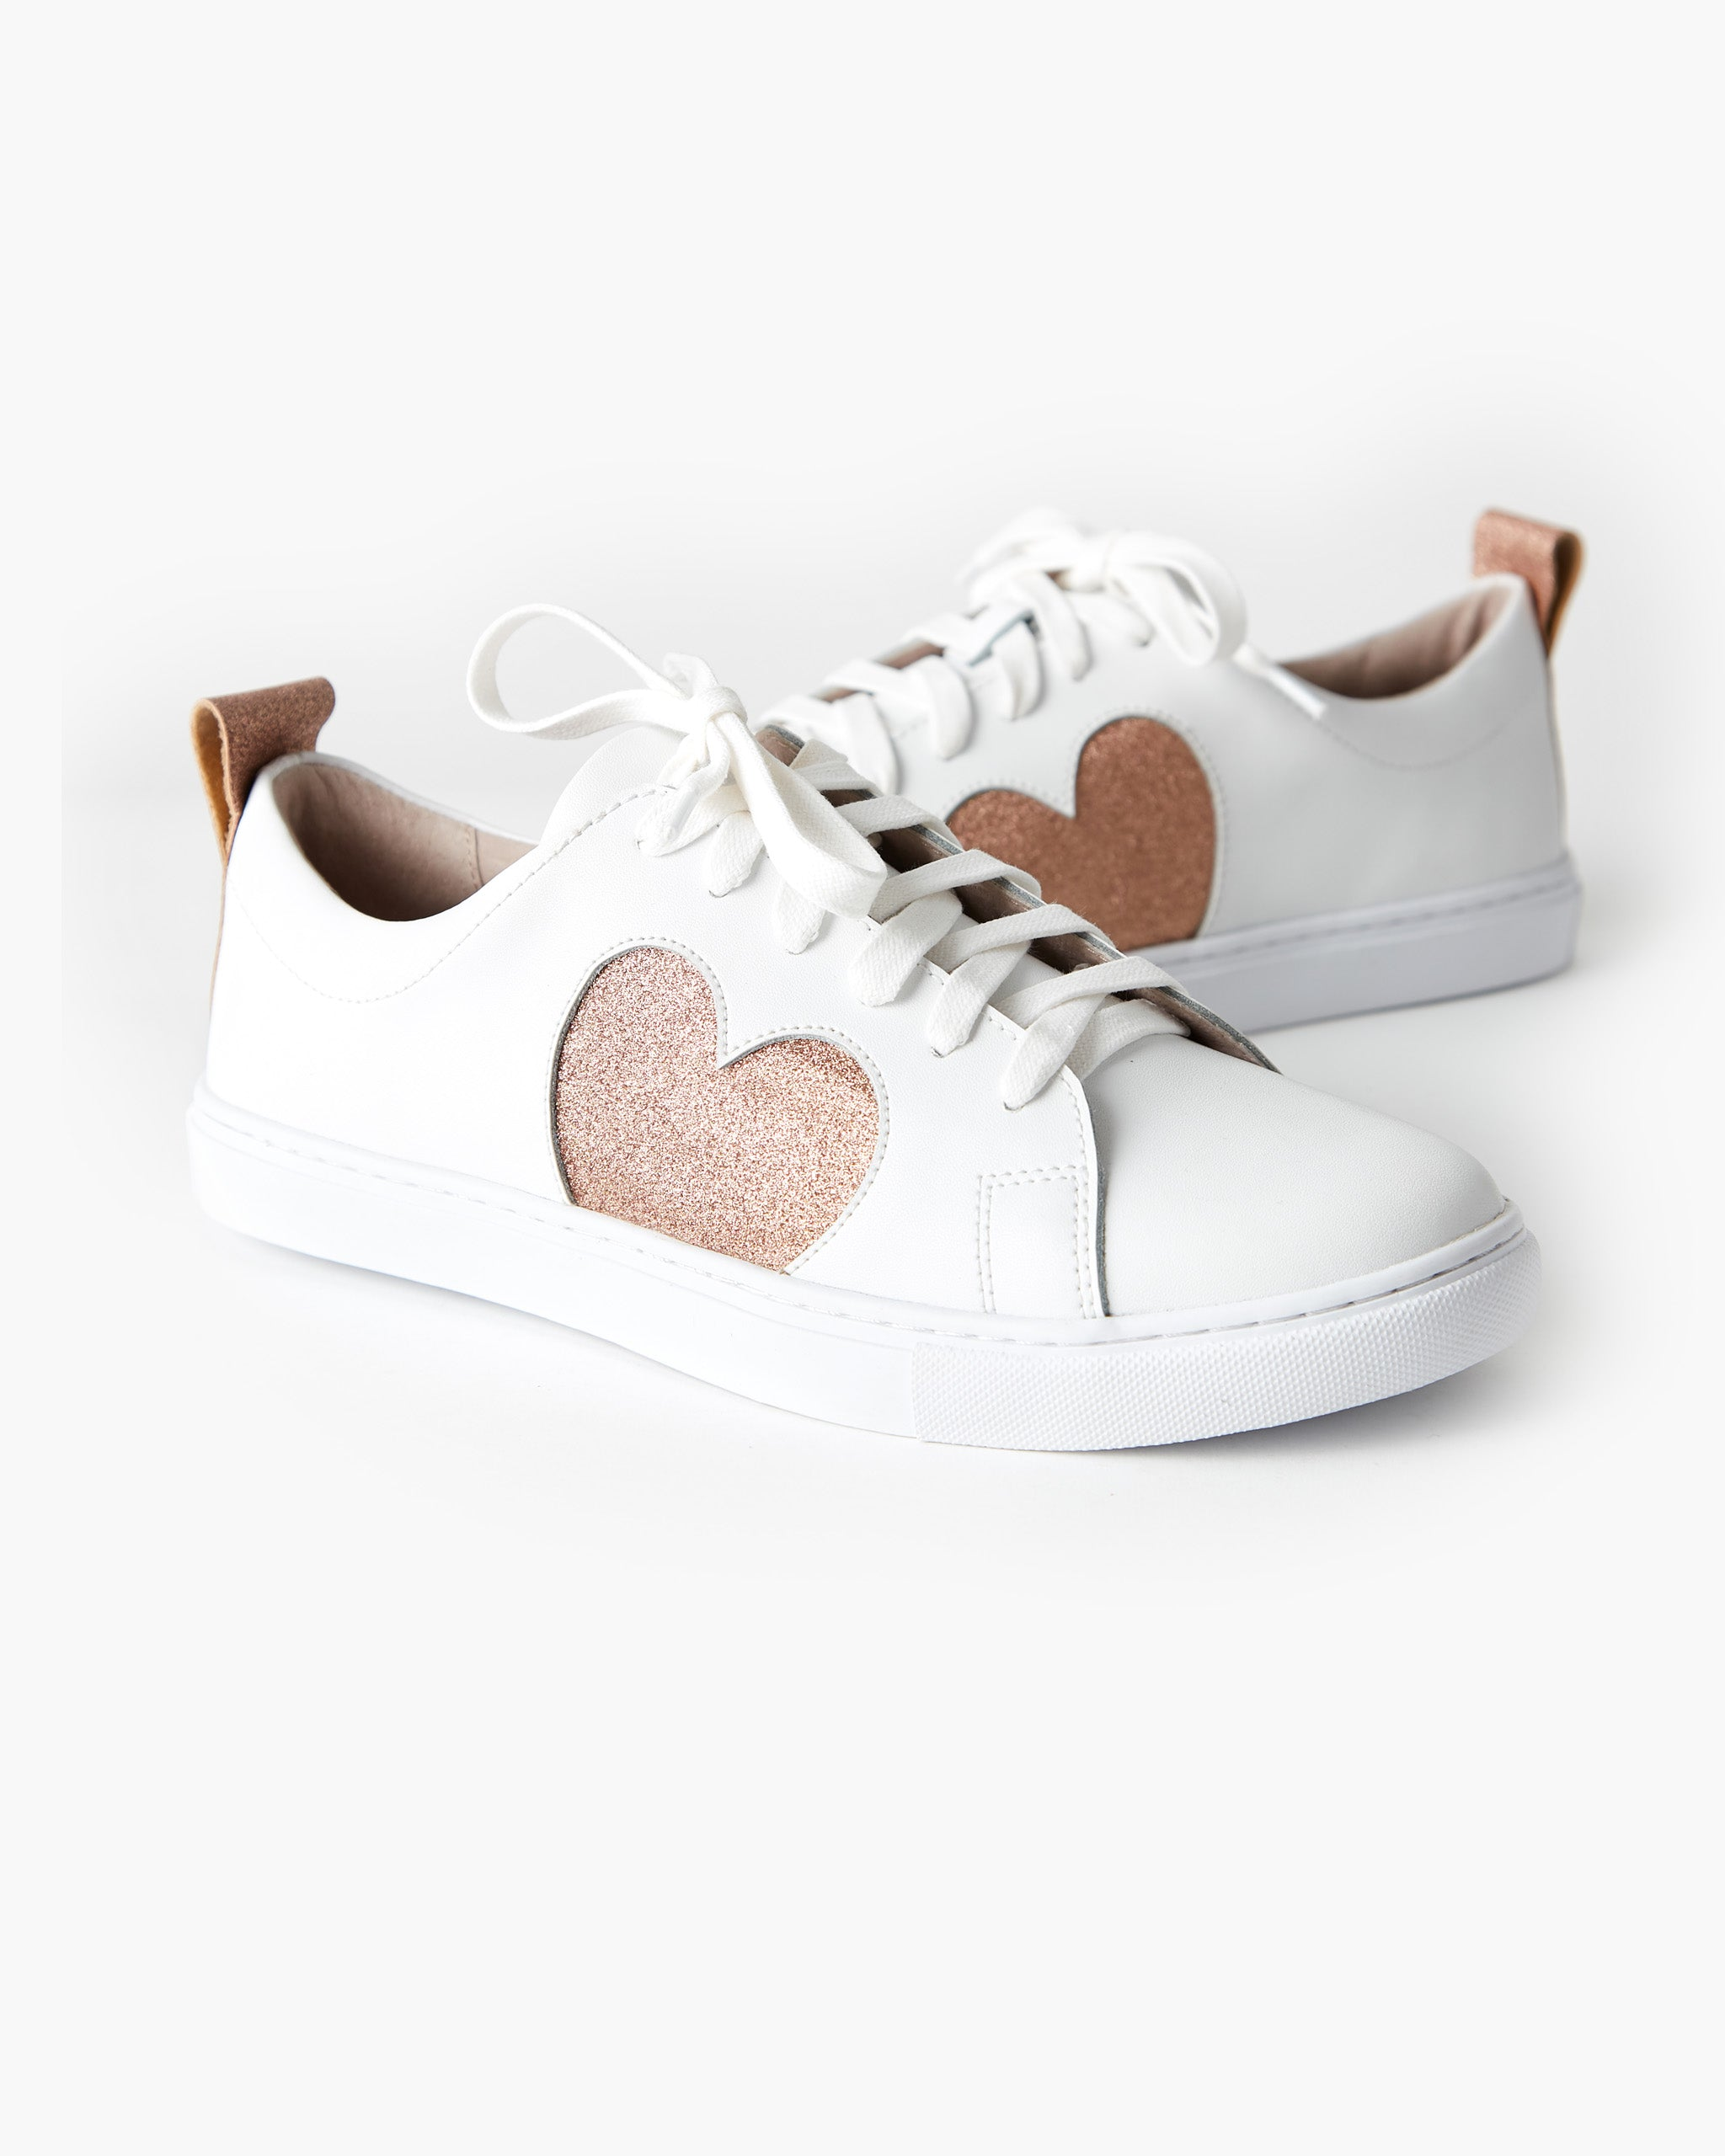 Heart Leather Sneaker - Rose Gold